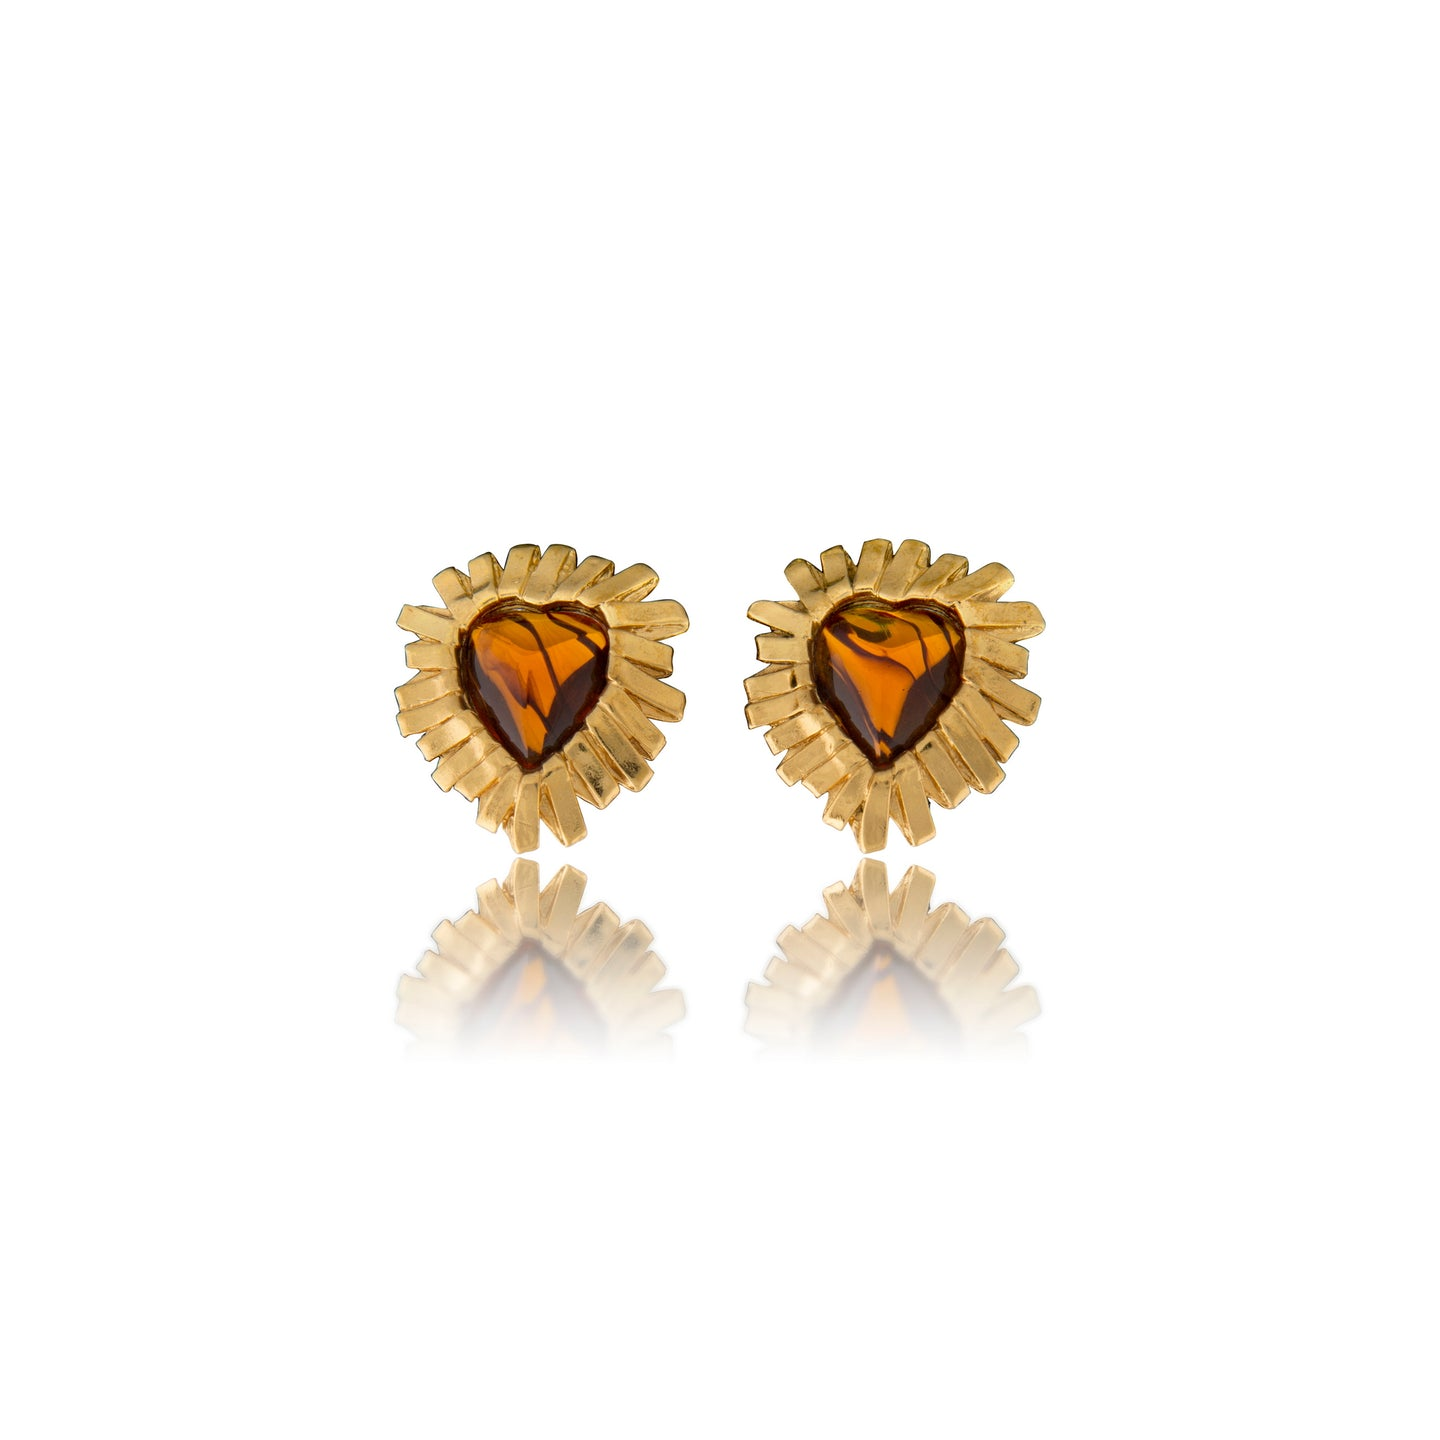 Vintage Yves Saint Laurent Heart Earrings